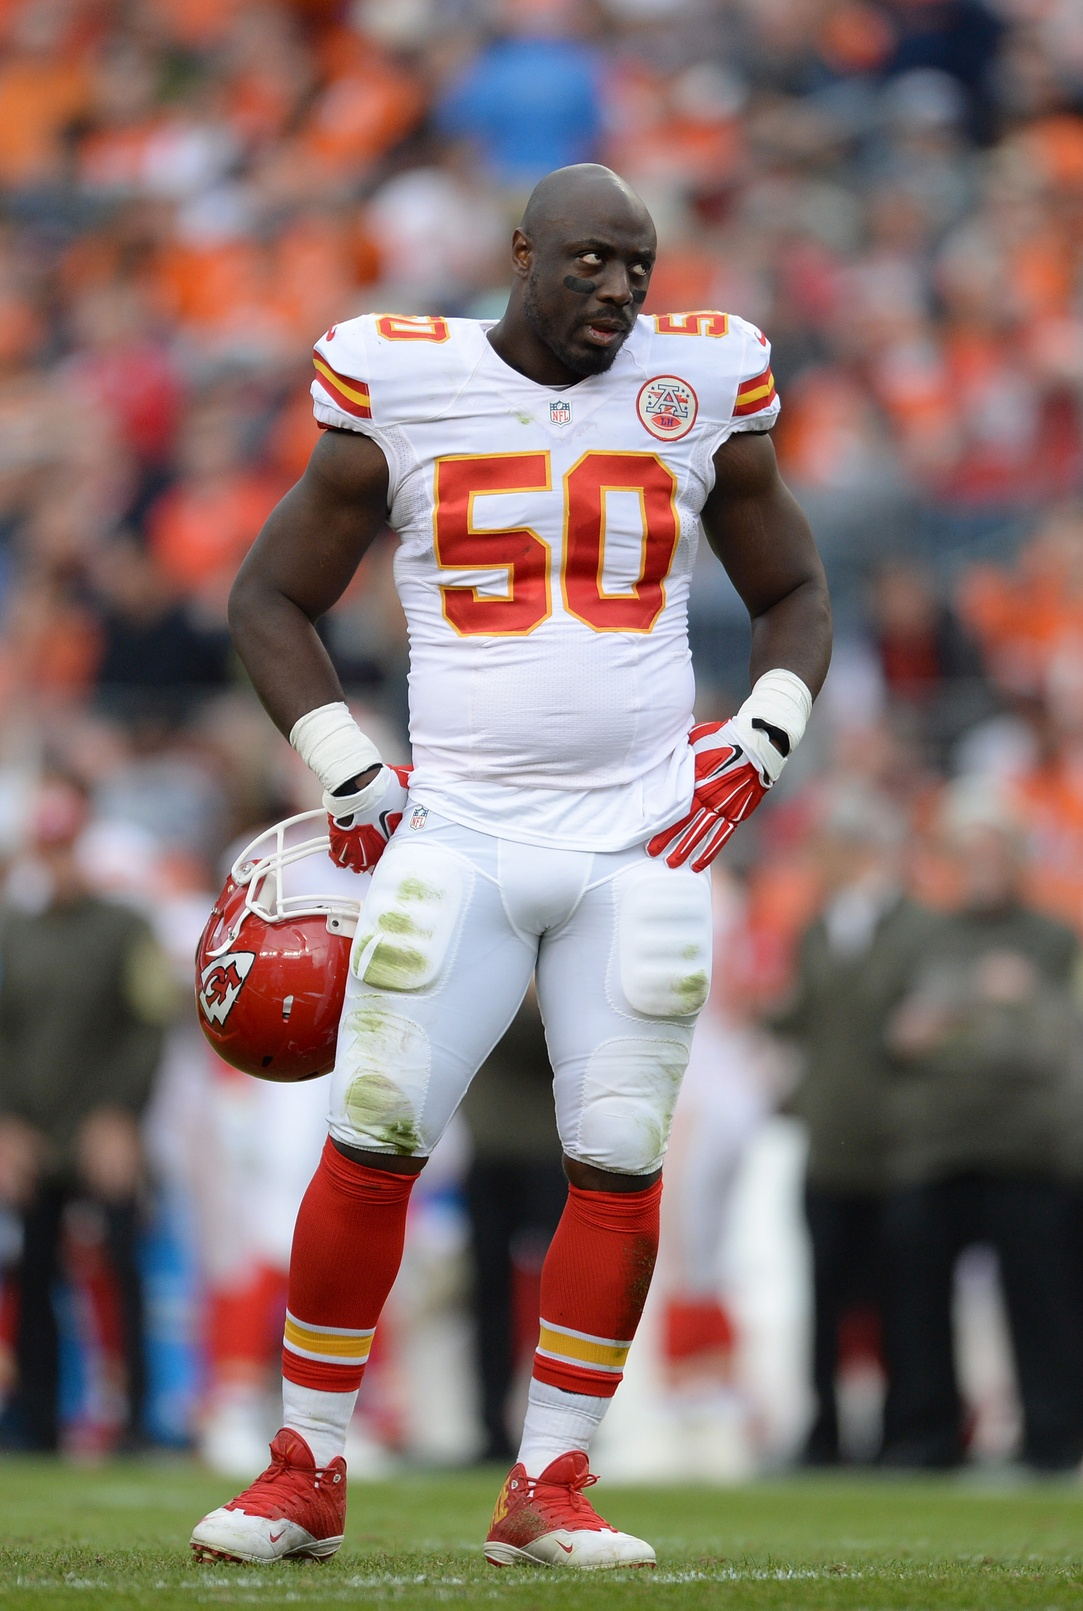 Former UGA LB Justin Houston could miss the 2016 NFL season